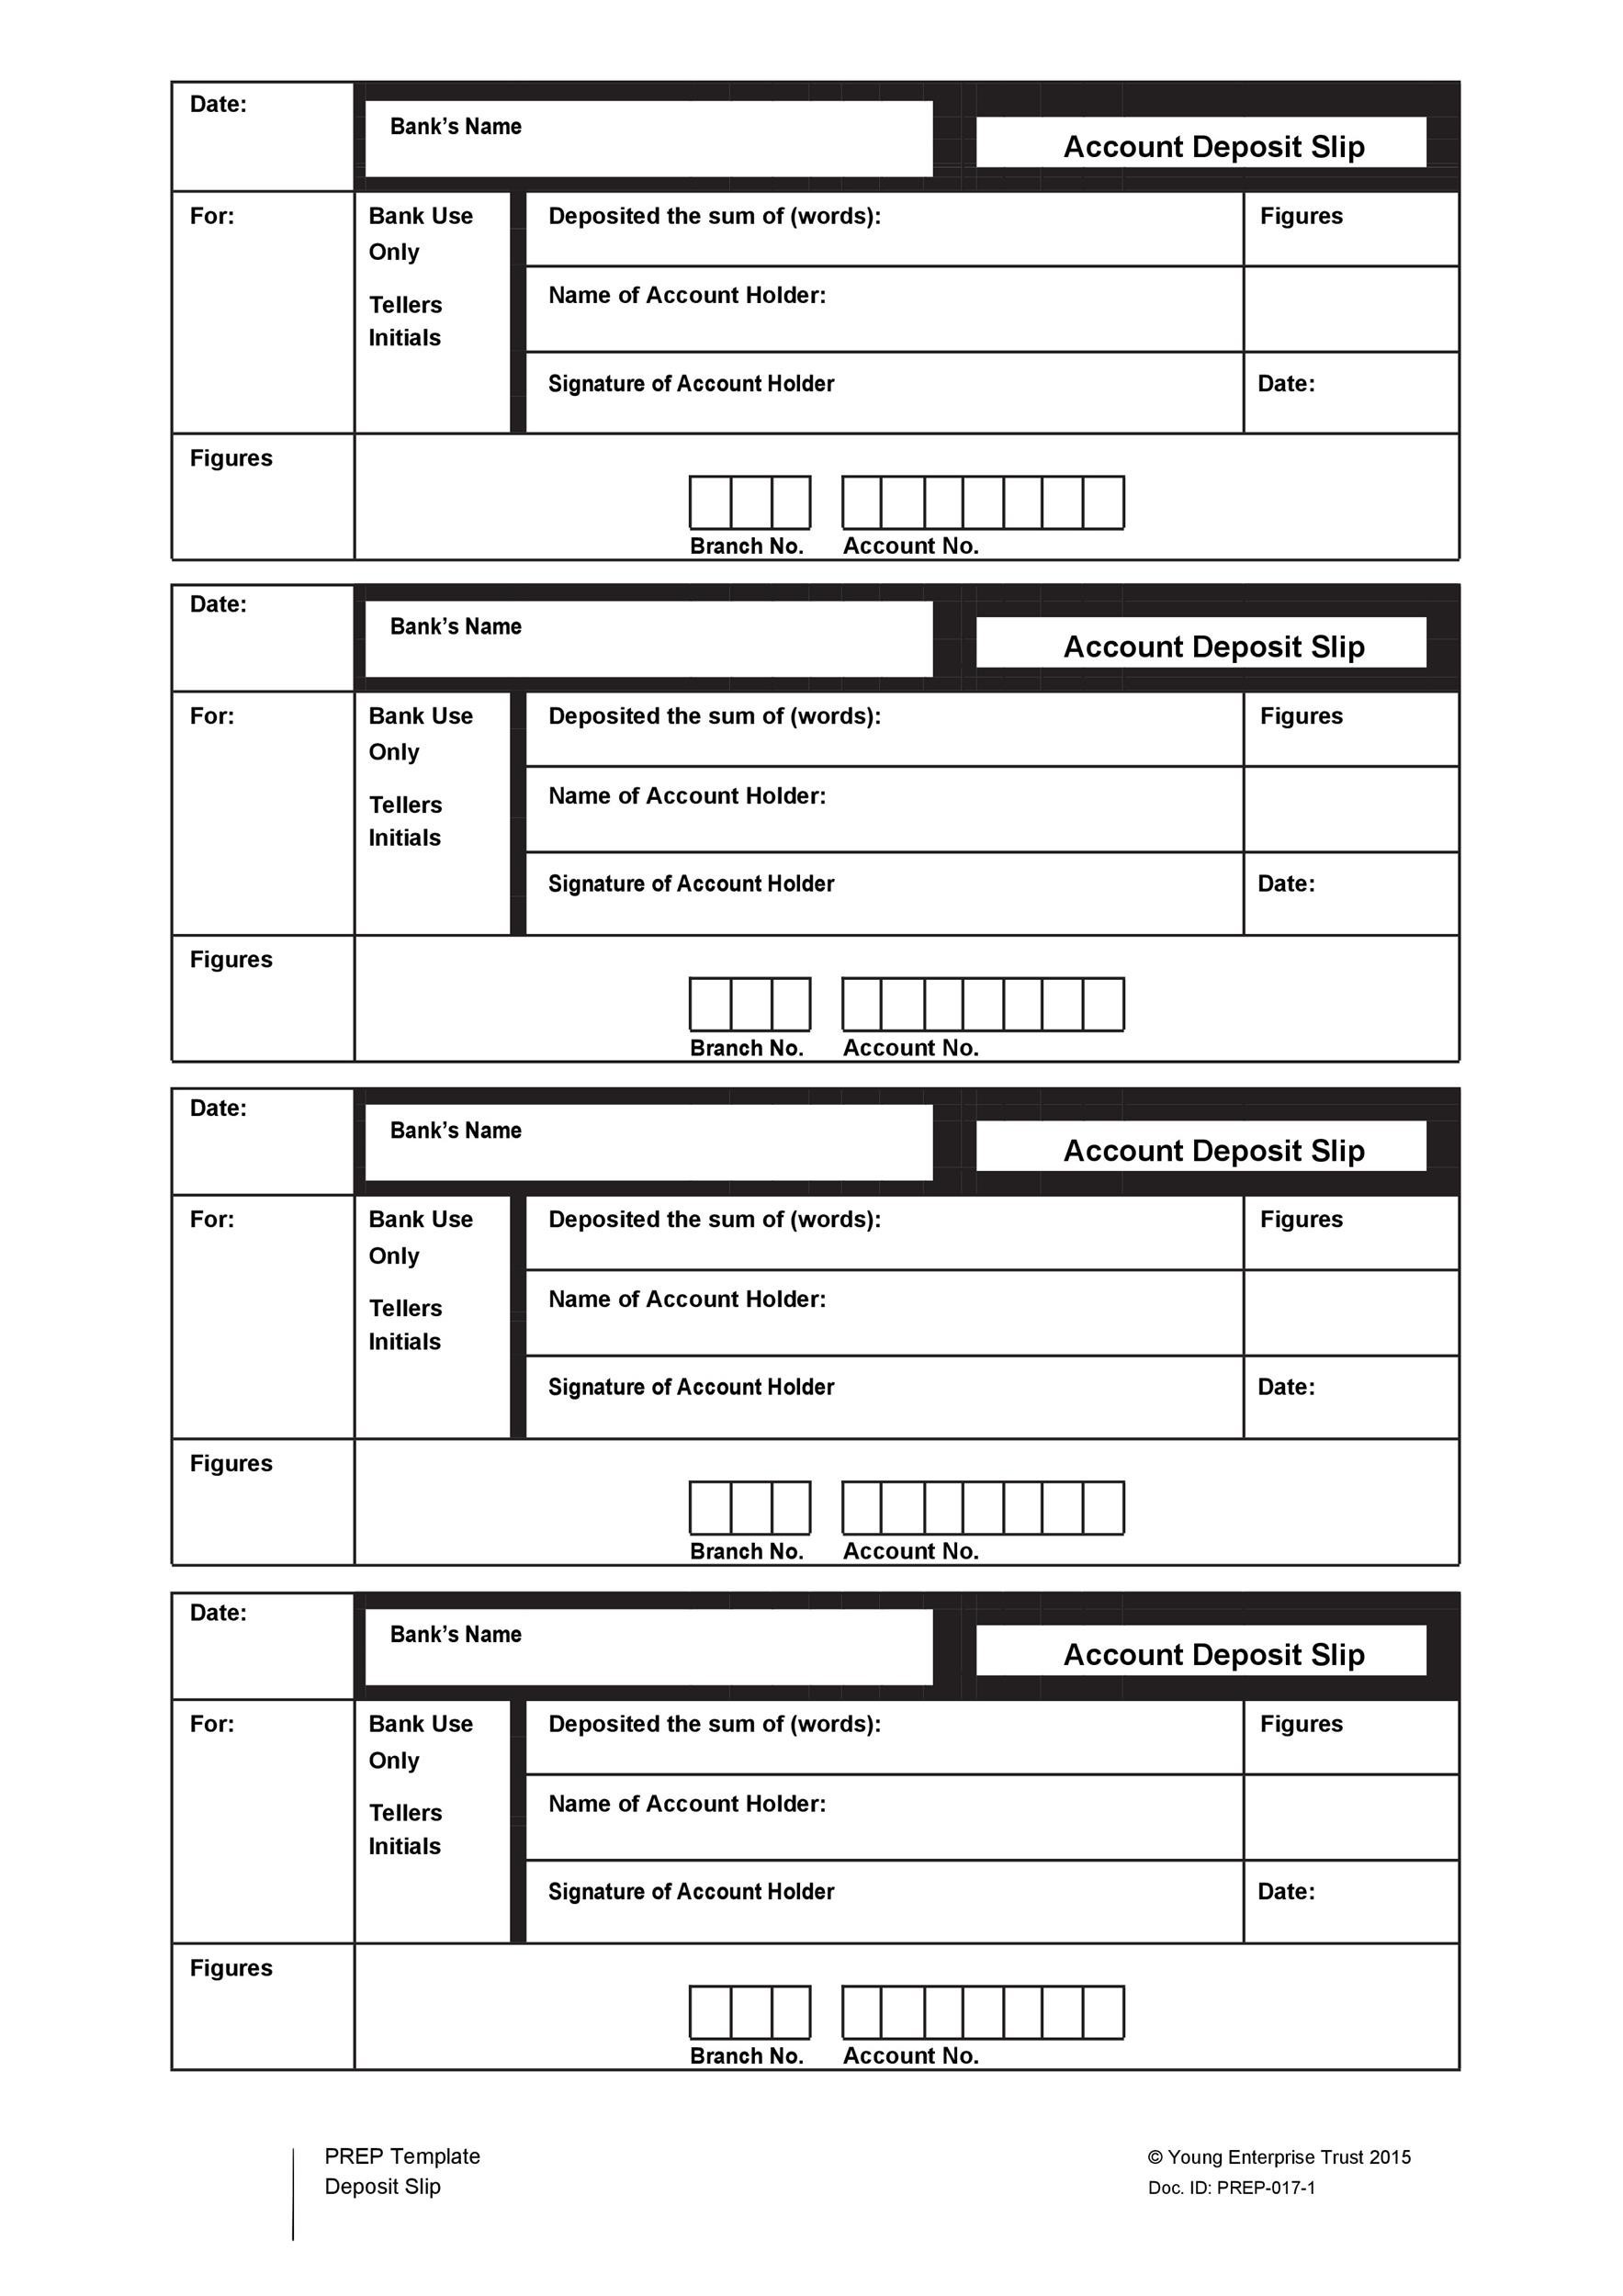 37 Bank Deposit Slip Templates  Examples - Template Lab - bank deposit slip template free